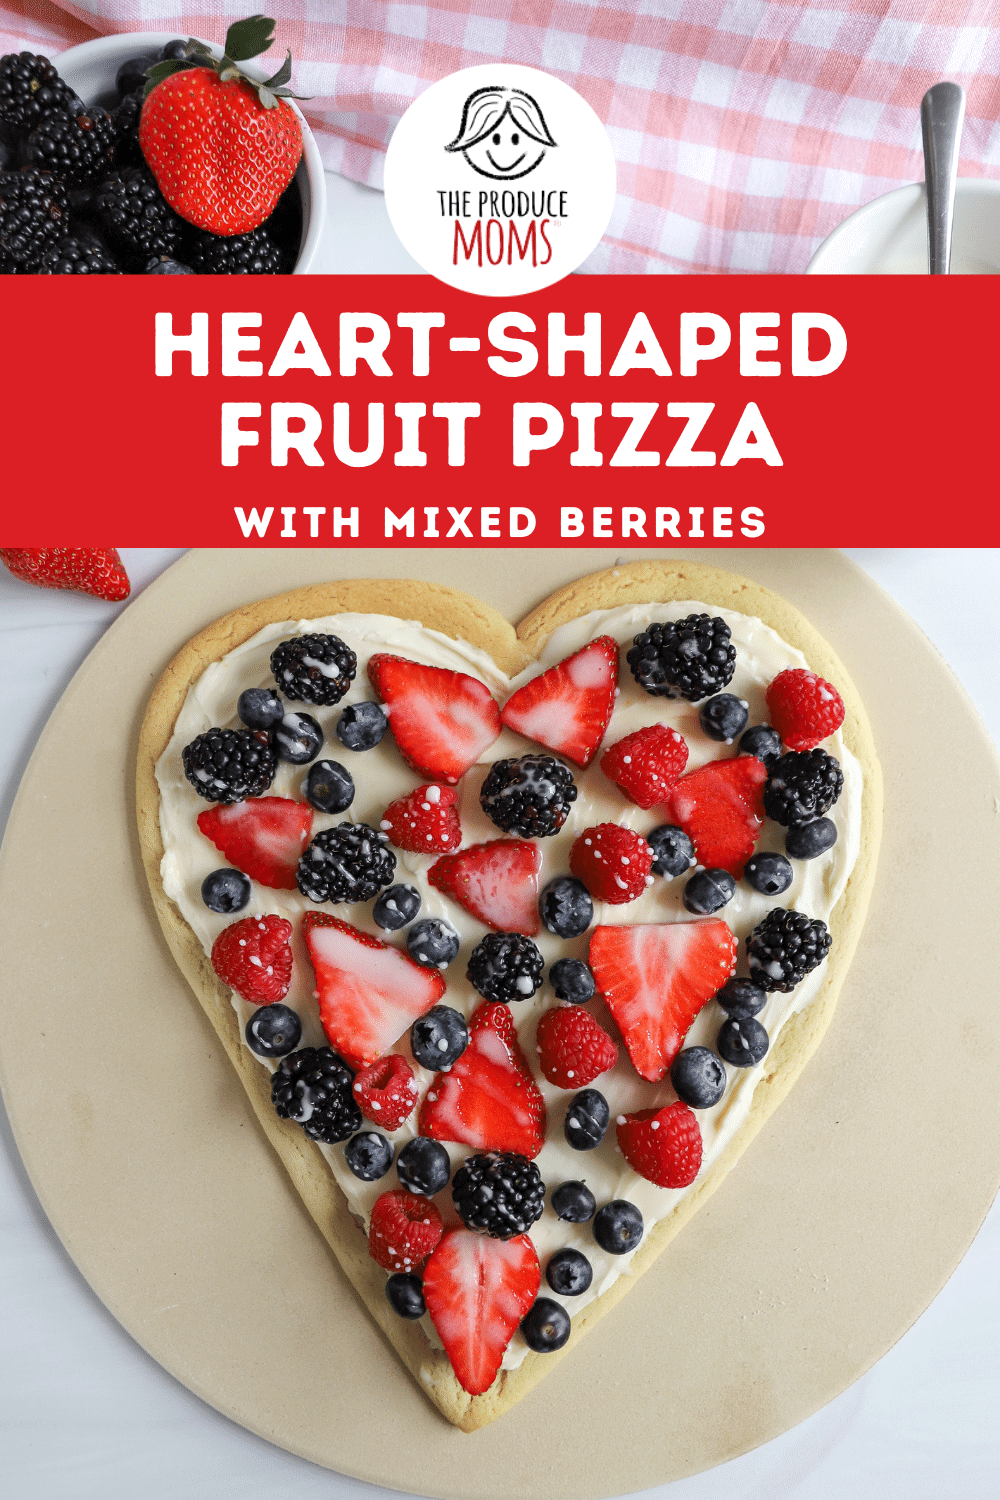 Heart-Shaped Fruit Pizza with Mixed Berries